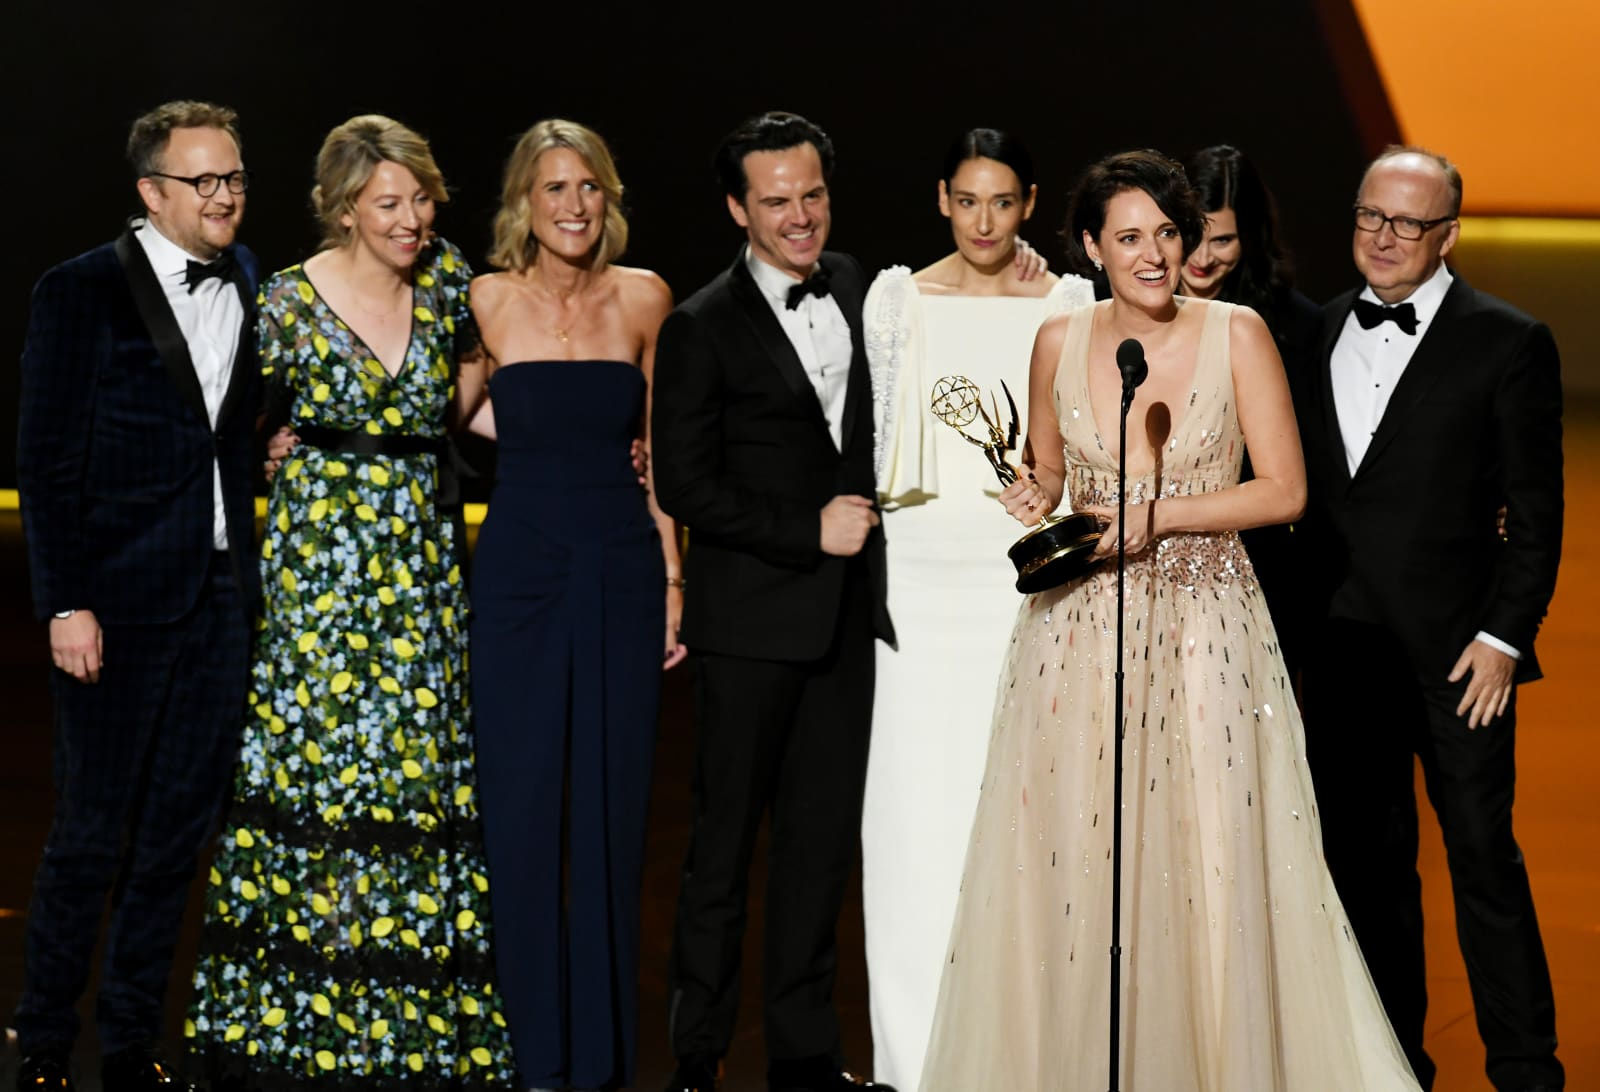 Phoebe Waller-Bridge (speaking) and fellow cast and crew members of 'Fleabag' accept the Outstanding Comedy Series award onstage during the 71st Emmy Awards at Microsoft Theater